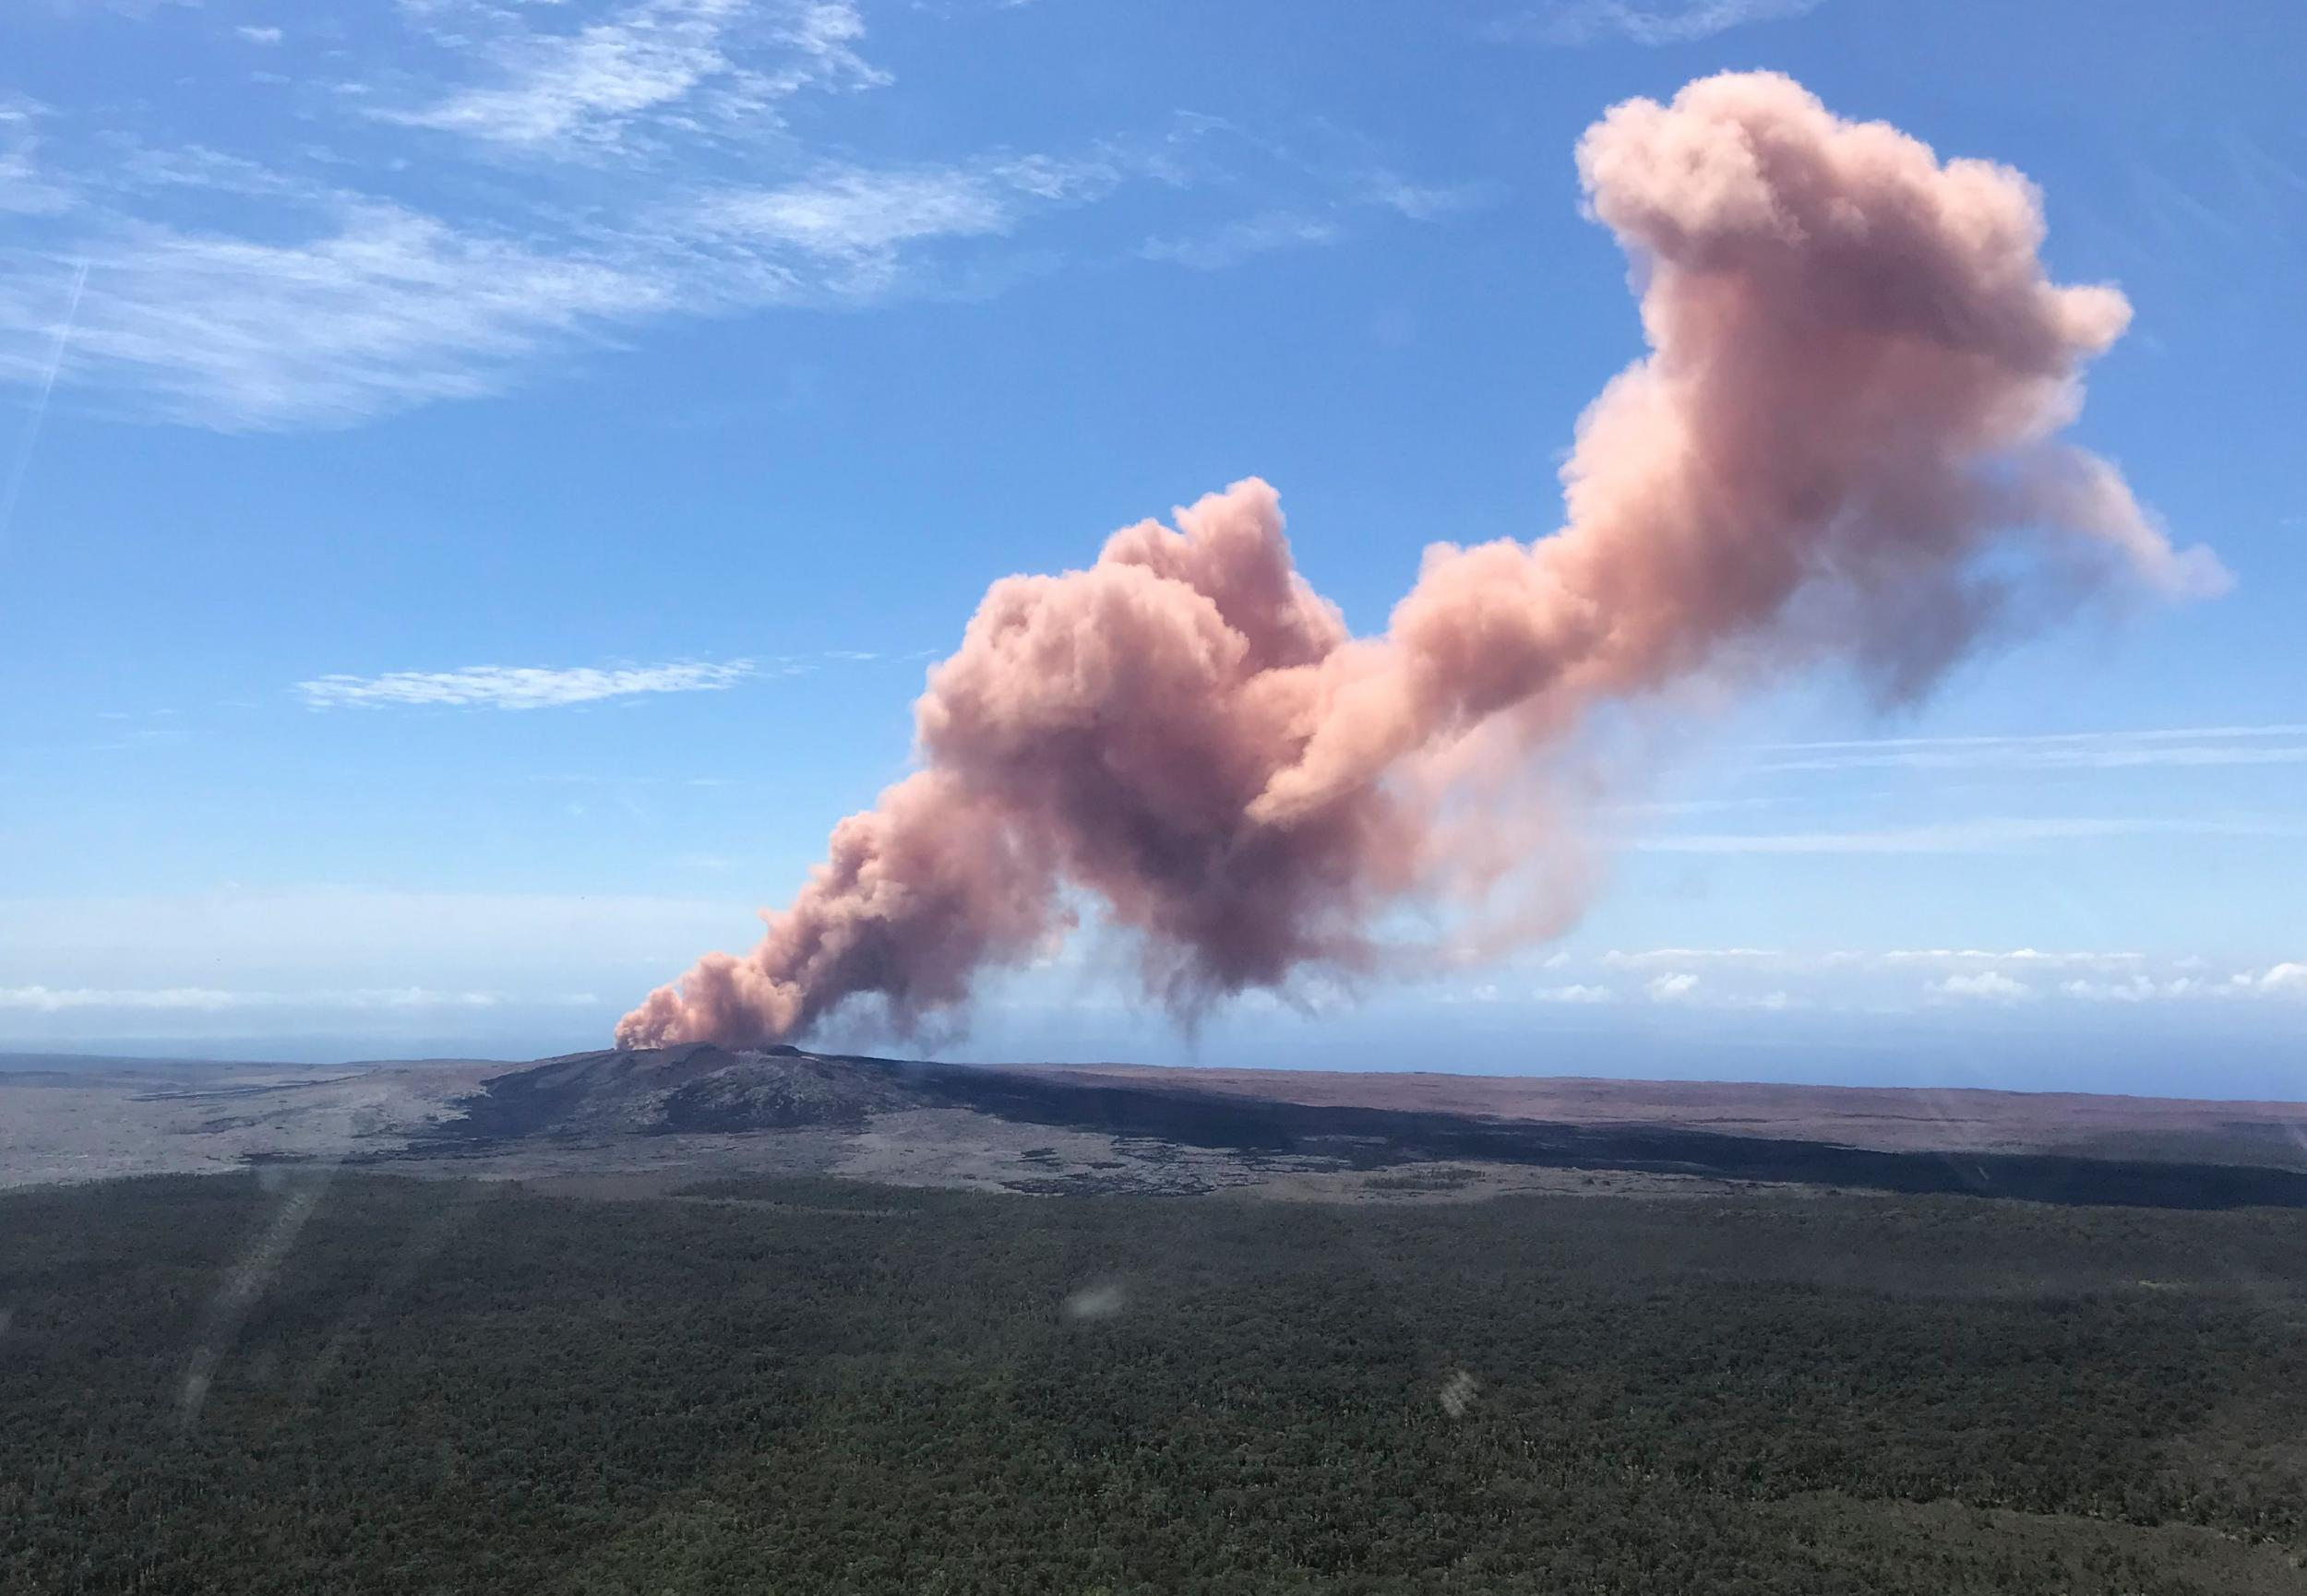 Hawaii Volcano Mount Kilauea Erupts Sending Fountains Of Lava Into Shield Diagram With Labels Quotes Plumes